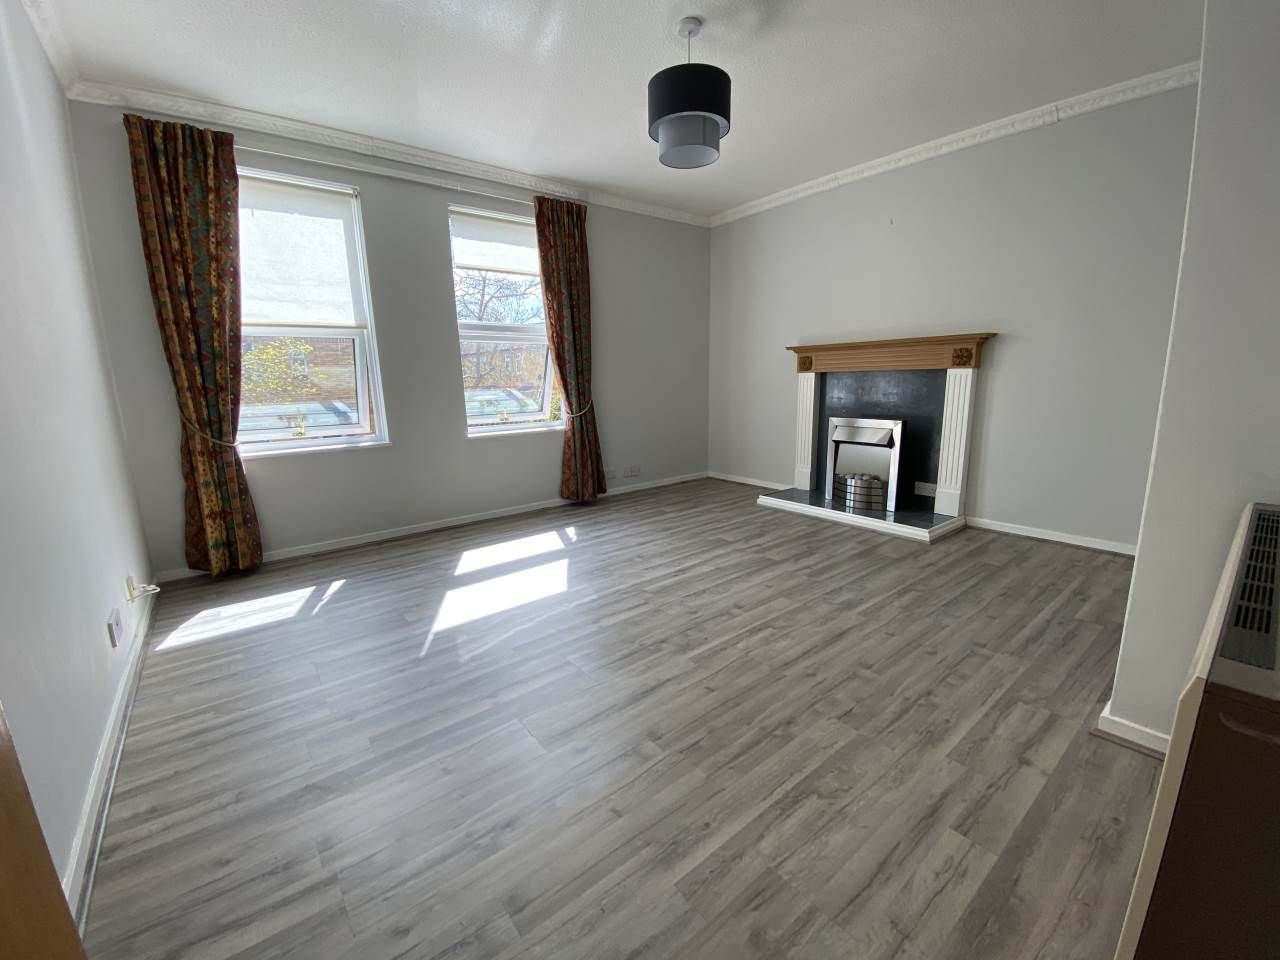 Property photo 1 of 8. Living/Dining Room